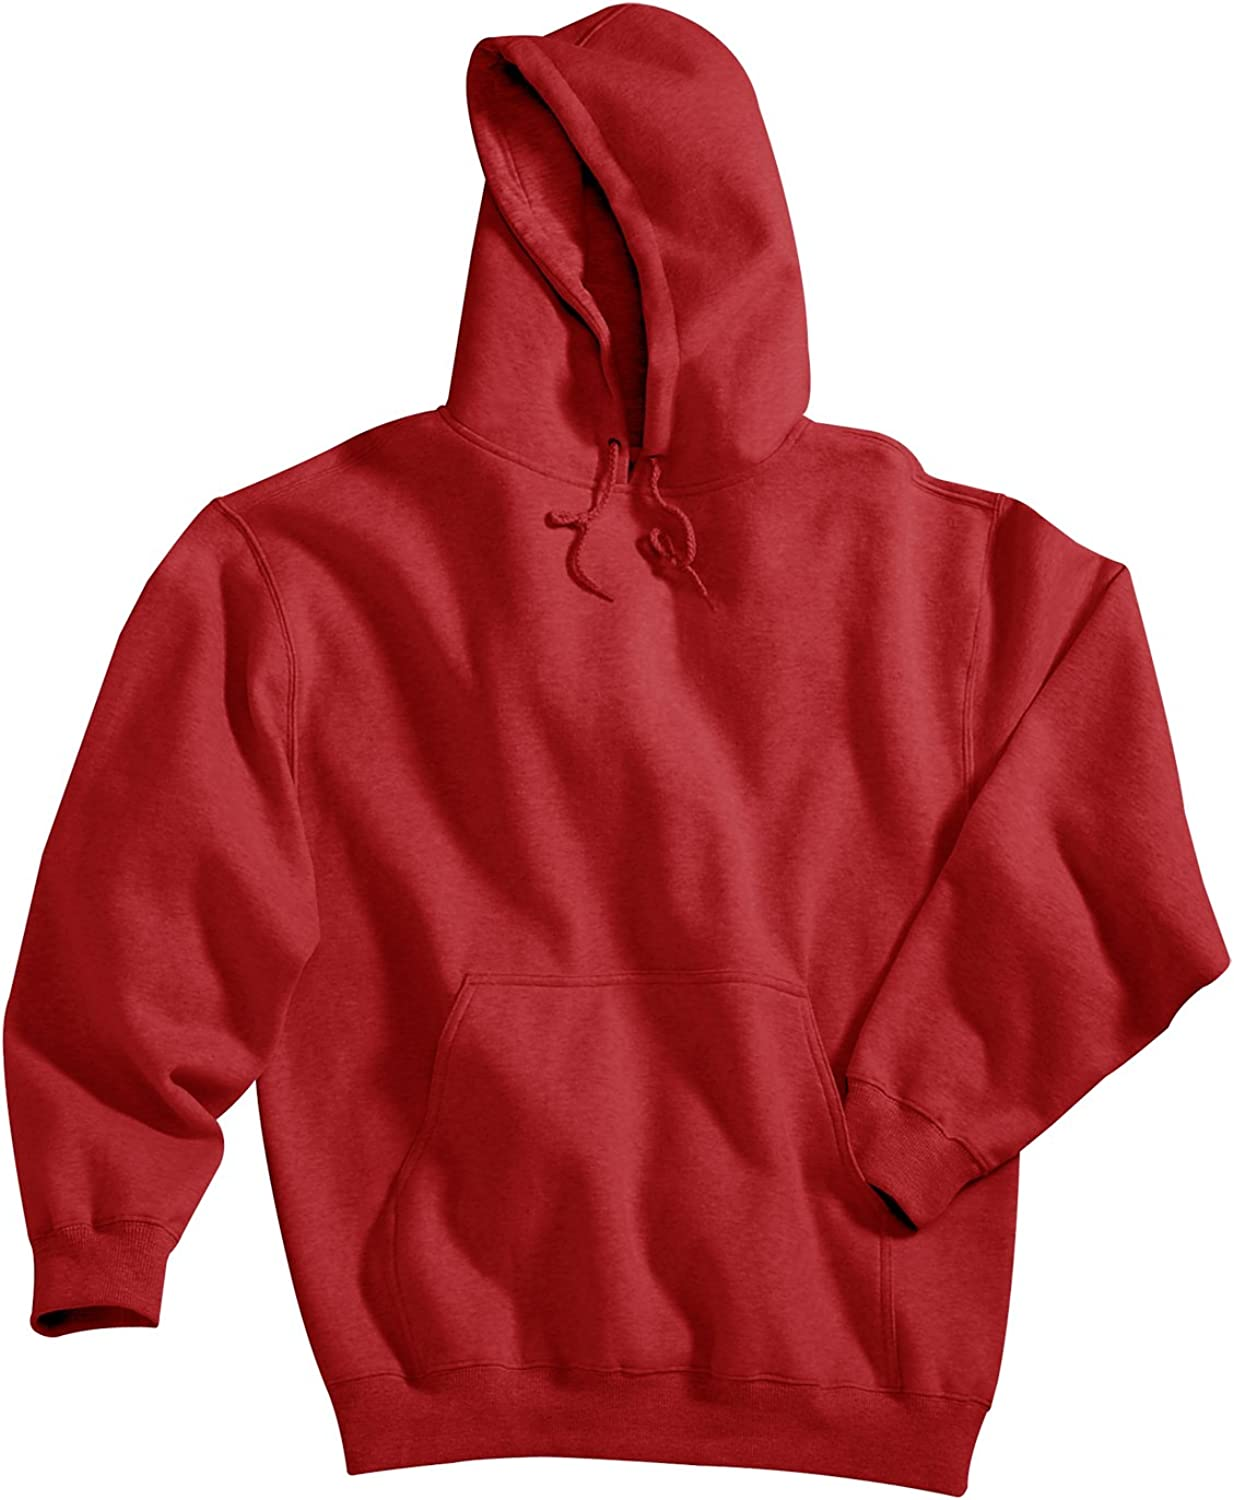 Big and Tall Pullover Hooded Sweat Shirts up to Size 6XT